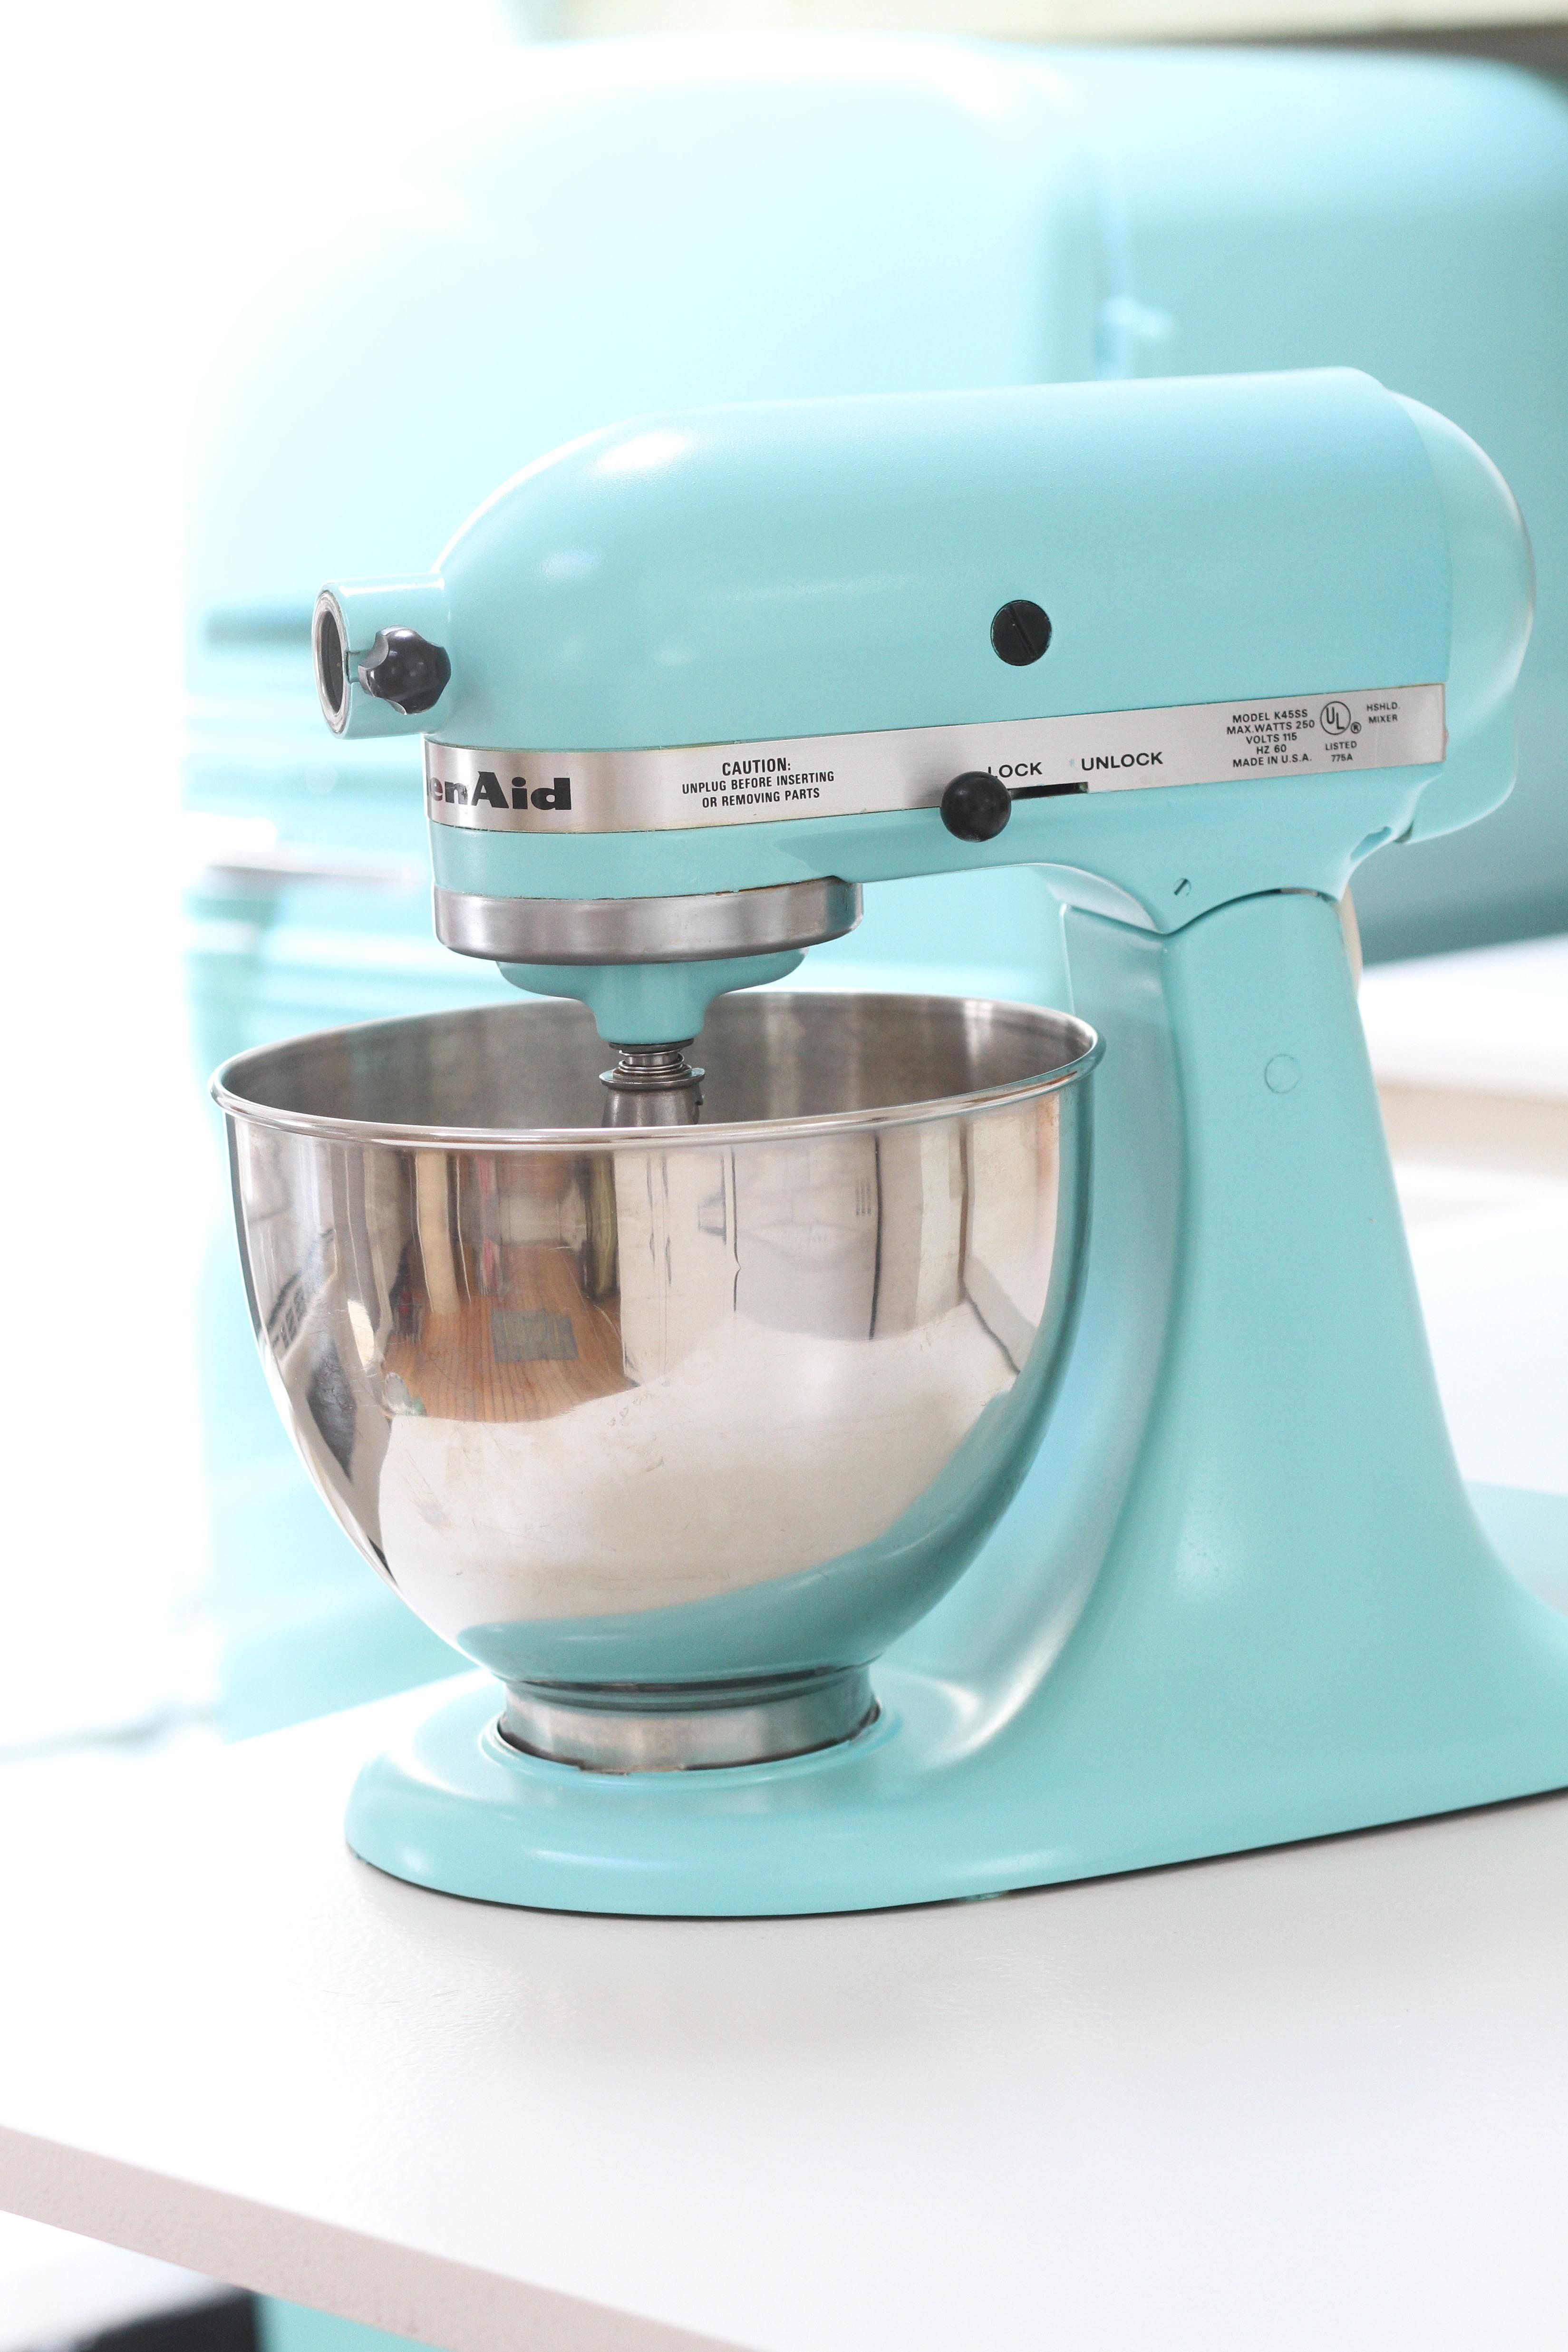 How To Paint a KitchenAid Mixer a New Color   Stand mixers, Mixers ...